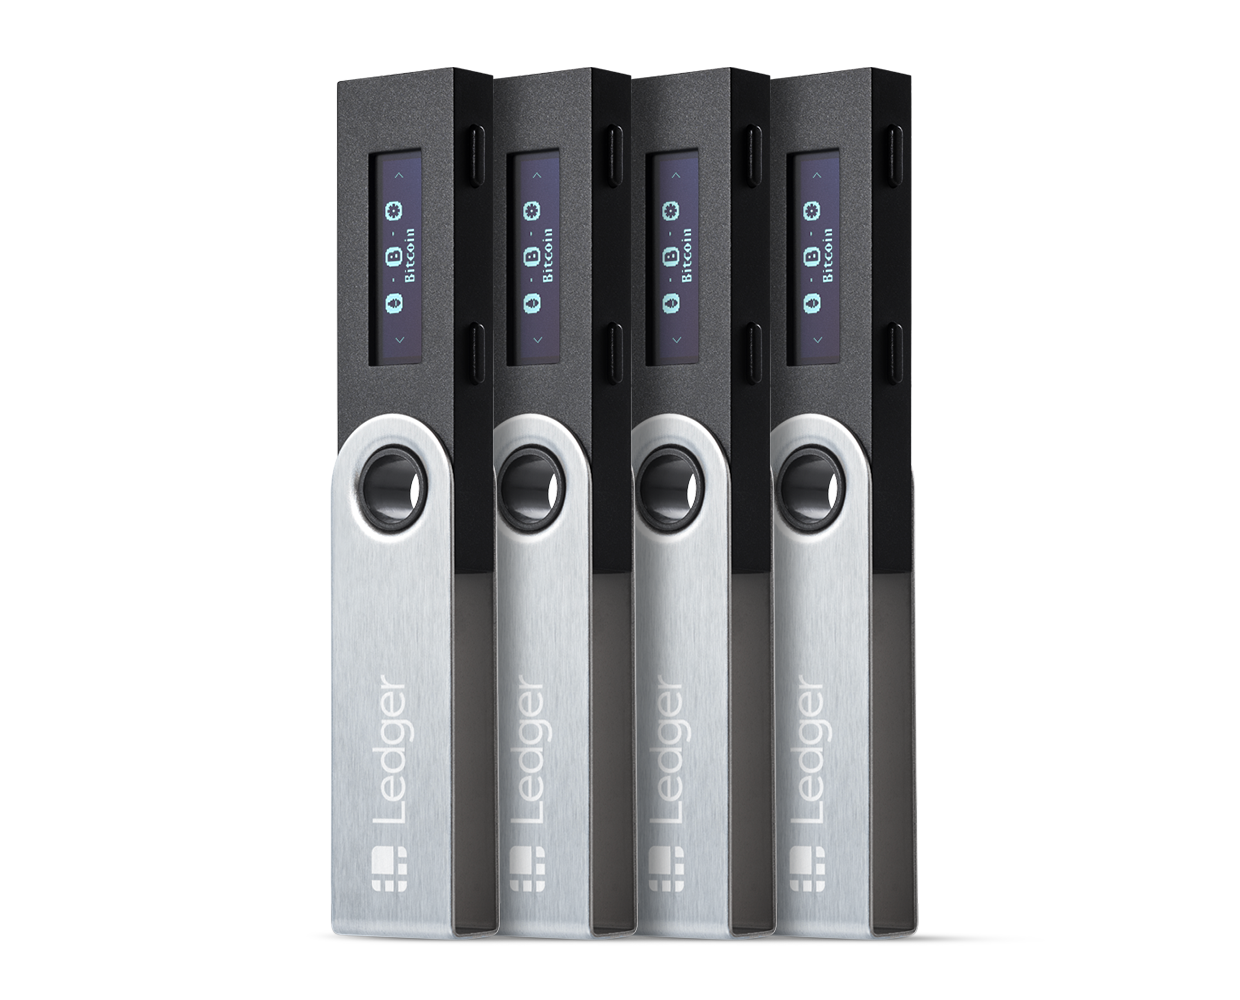 Ledger Nano S Family Pack of 4 Hardware Wallets